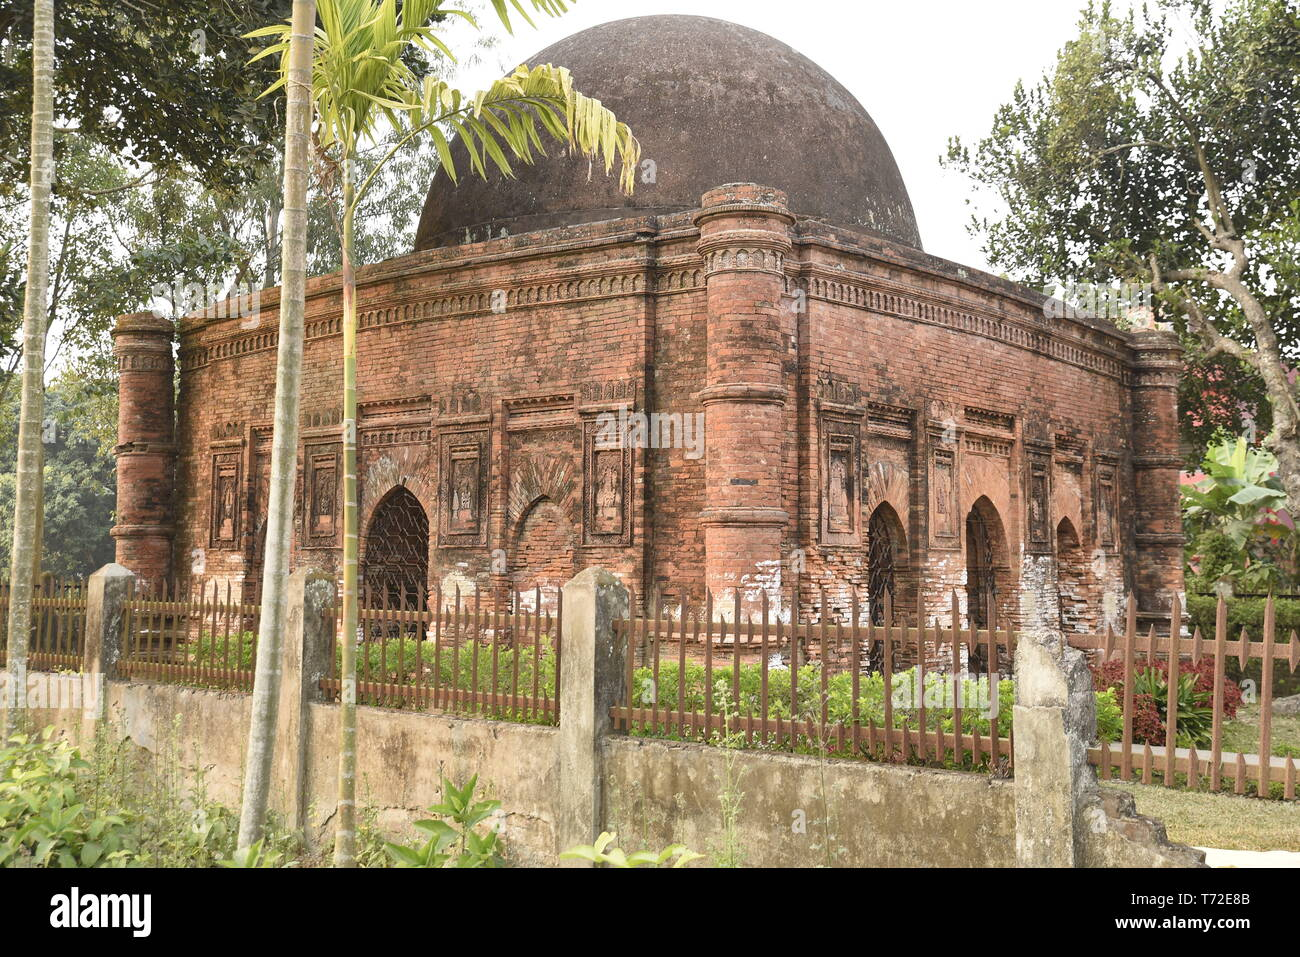 The ancien Goaldi mosque, historic monument in Bangladesh - Stock Image